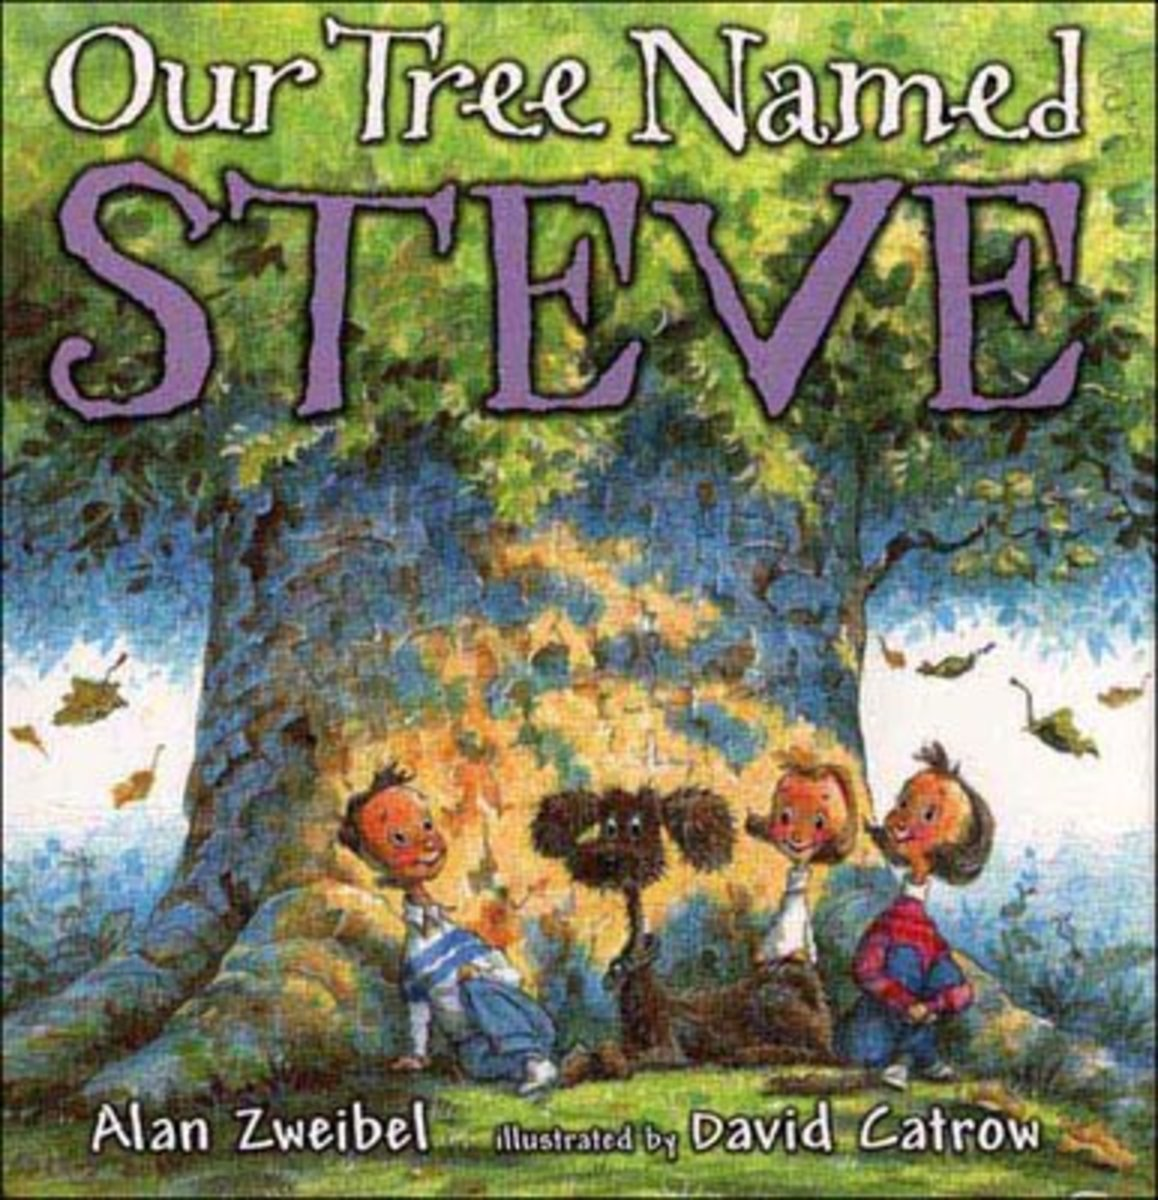 A Tree Named Steve